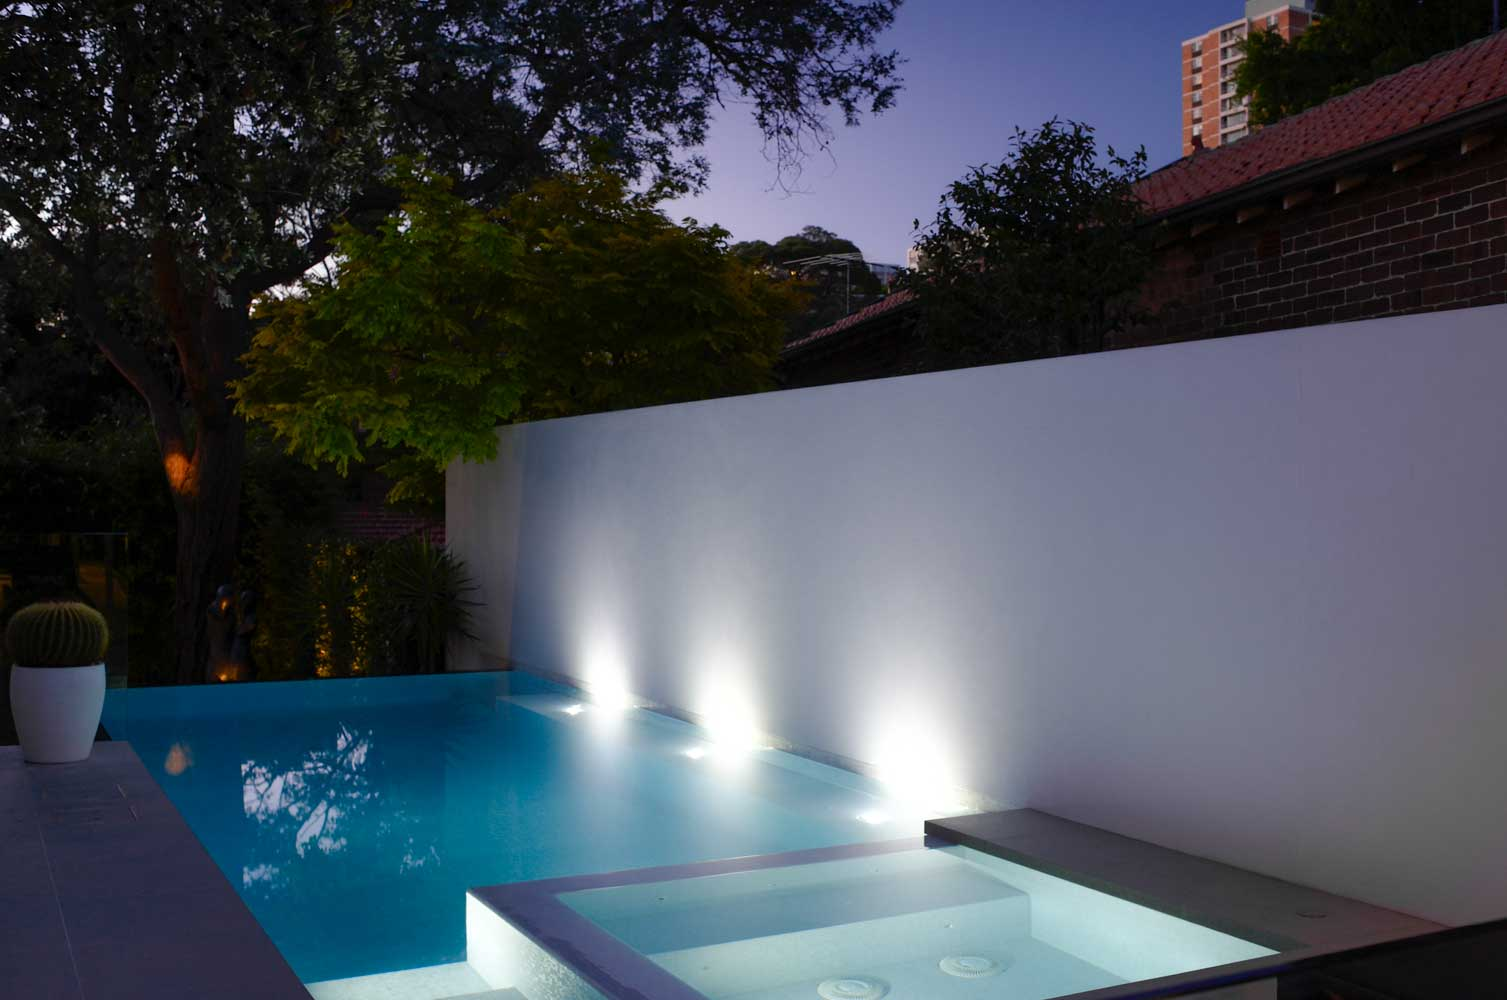 Pool design secret gardens sydney landscape architecture for Pool design sydney